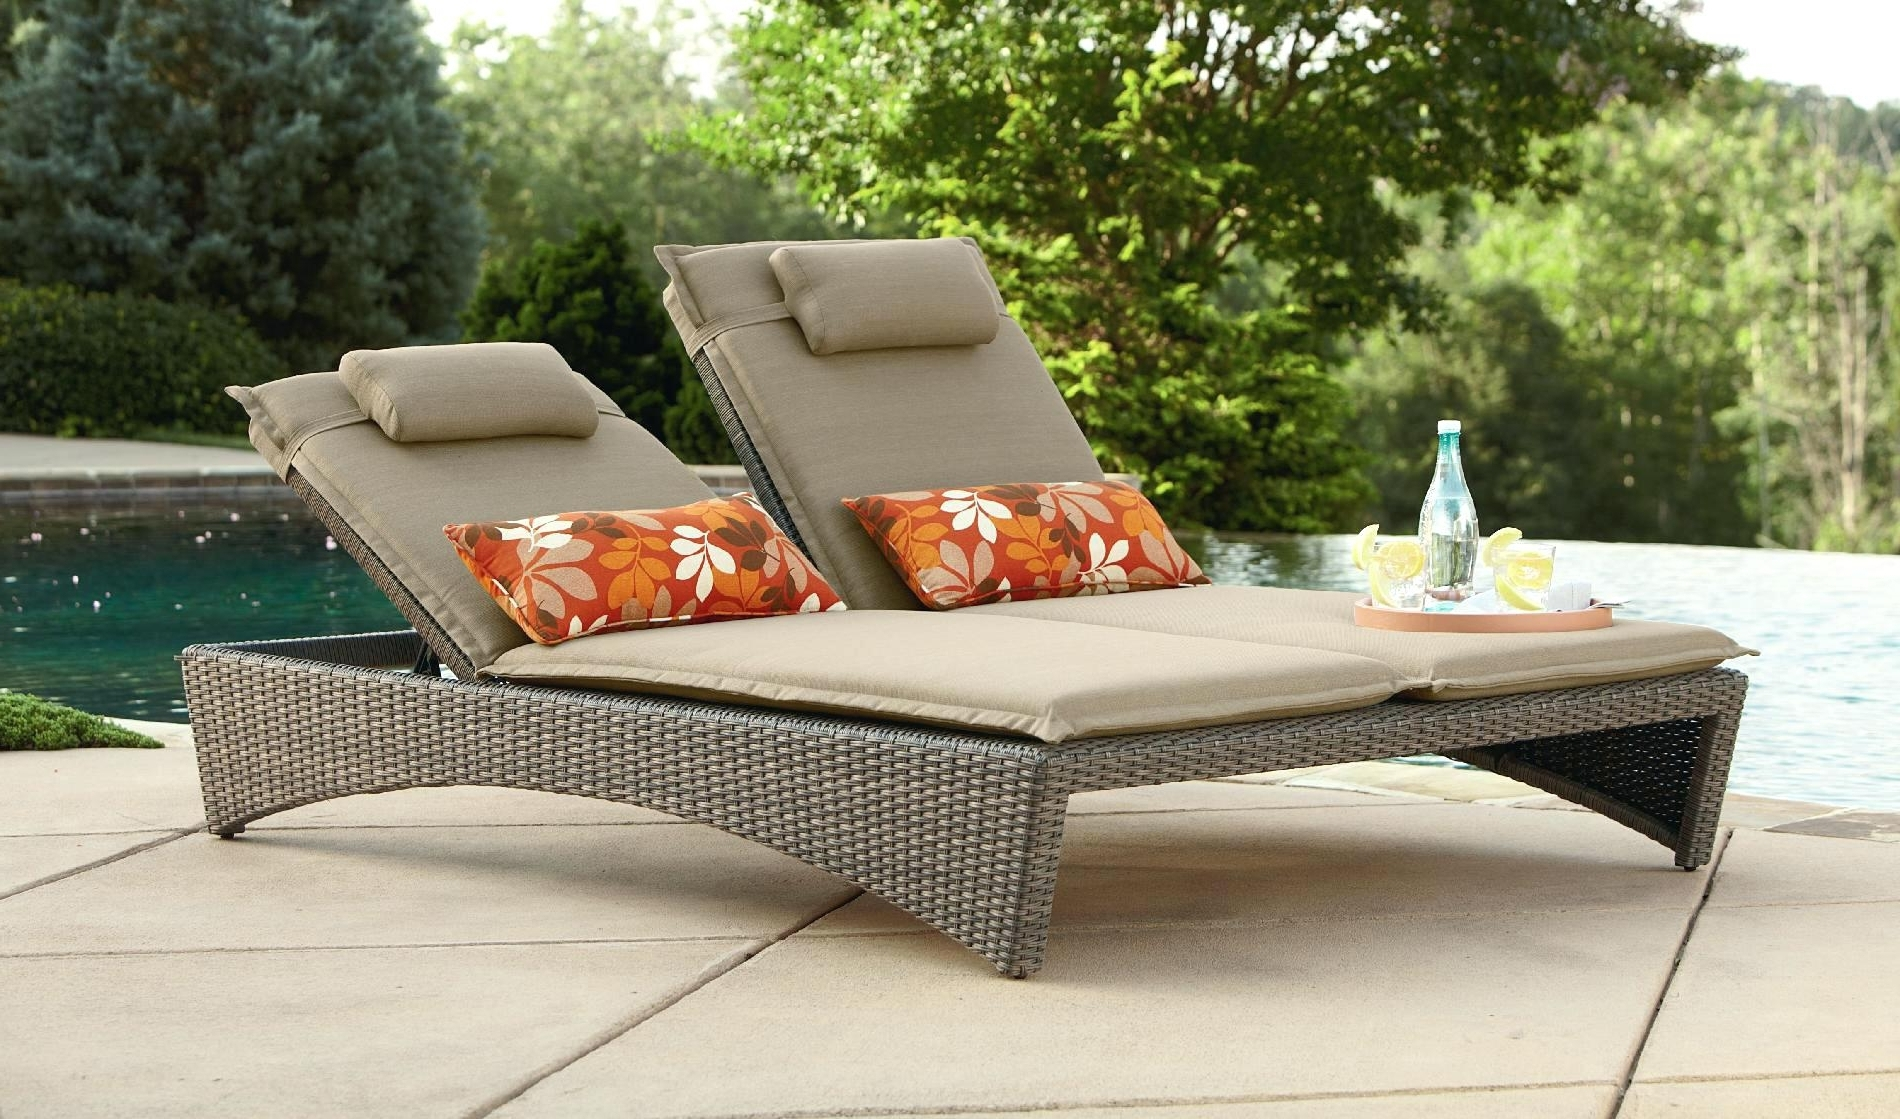 Showing Gallery Of Chaise Outdoor Lounge Chairs View 6 15 Photos